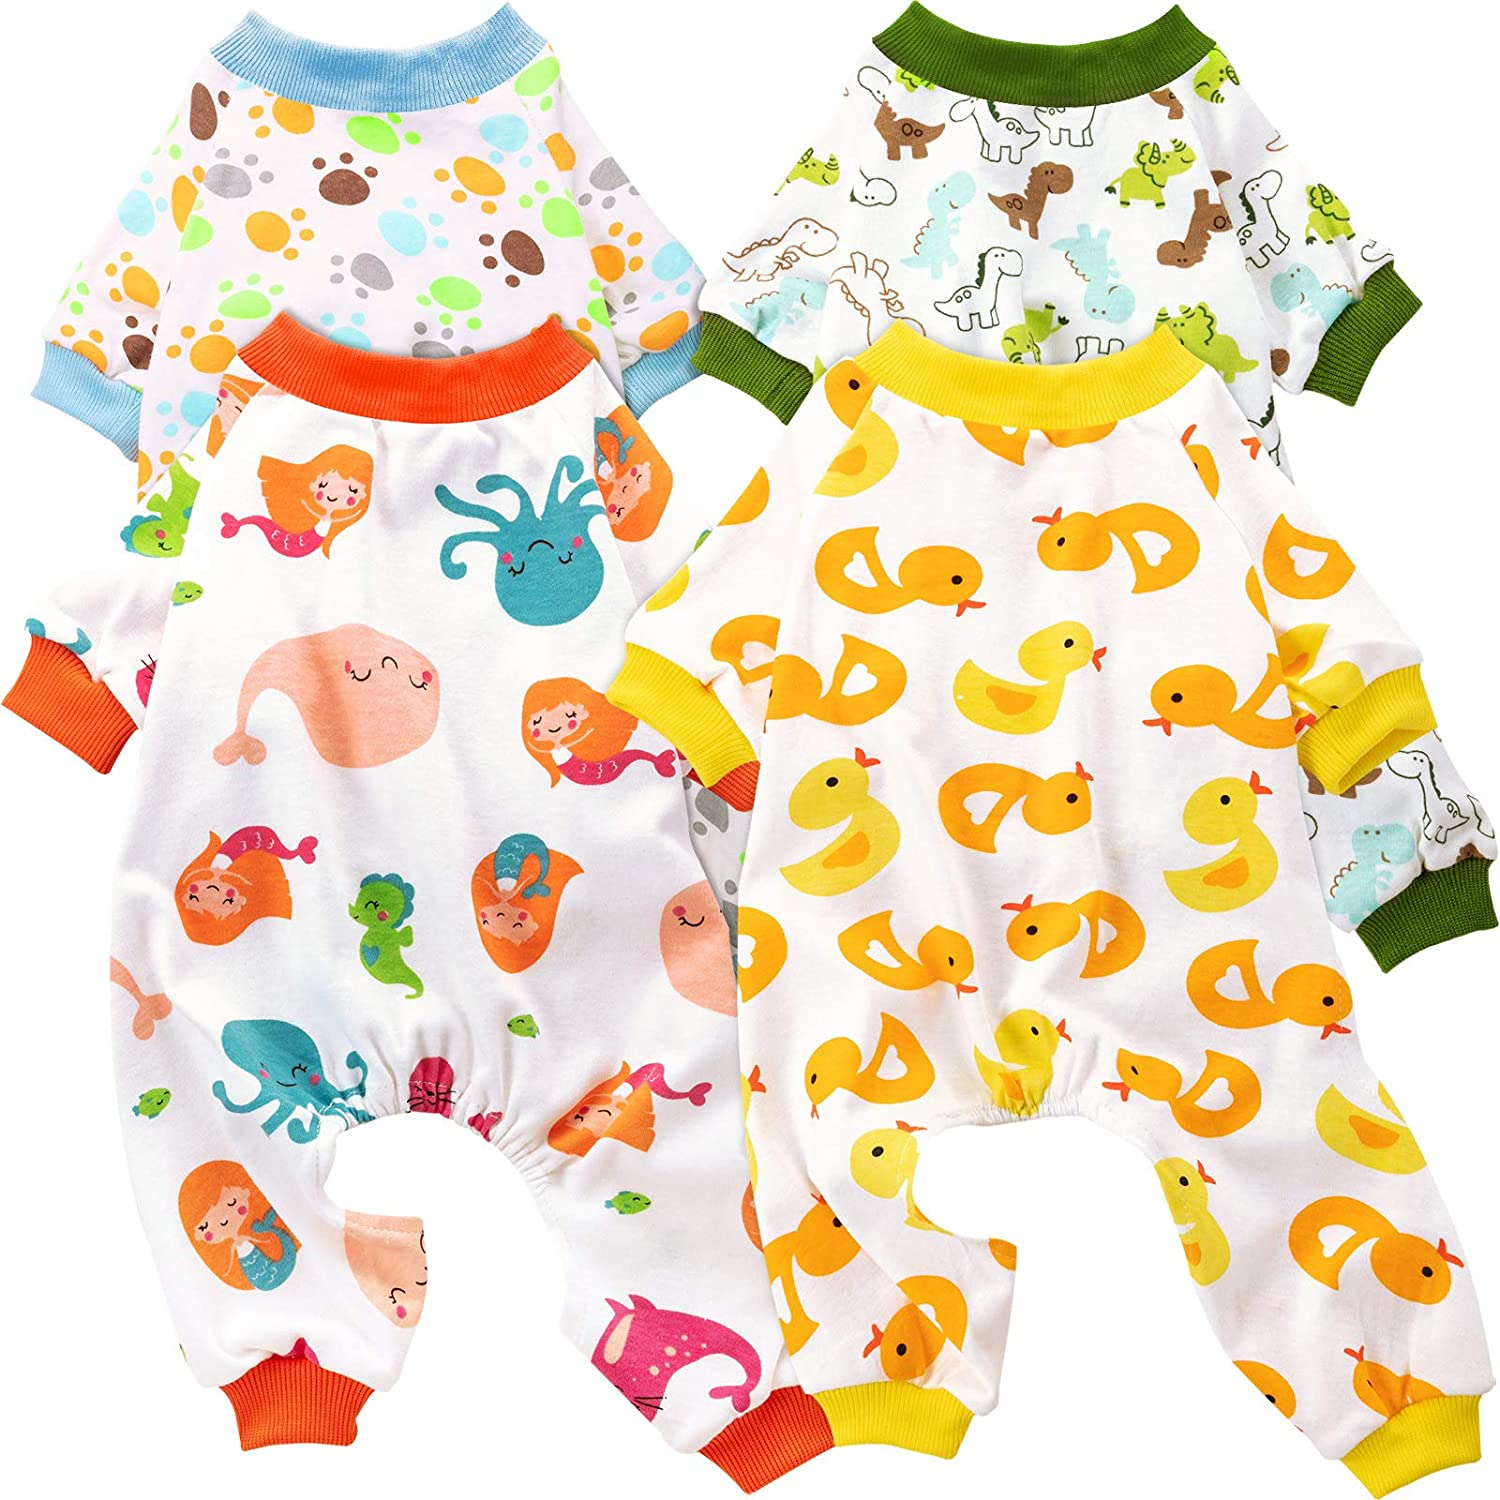 4 Pieces Puppy Dog Cotton Onesies Pet Dog Soft Pajamas Cute Pet Clothes Dog Jumpsuit Puppy Bodysuits for Pet Dog Cat Christmas 4 Styles Animals Patterns, Small